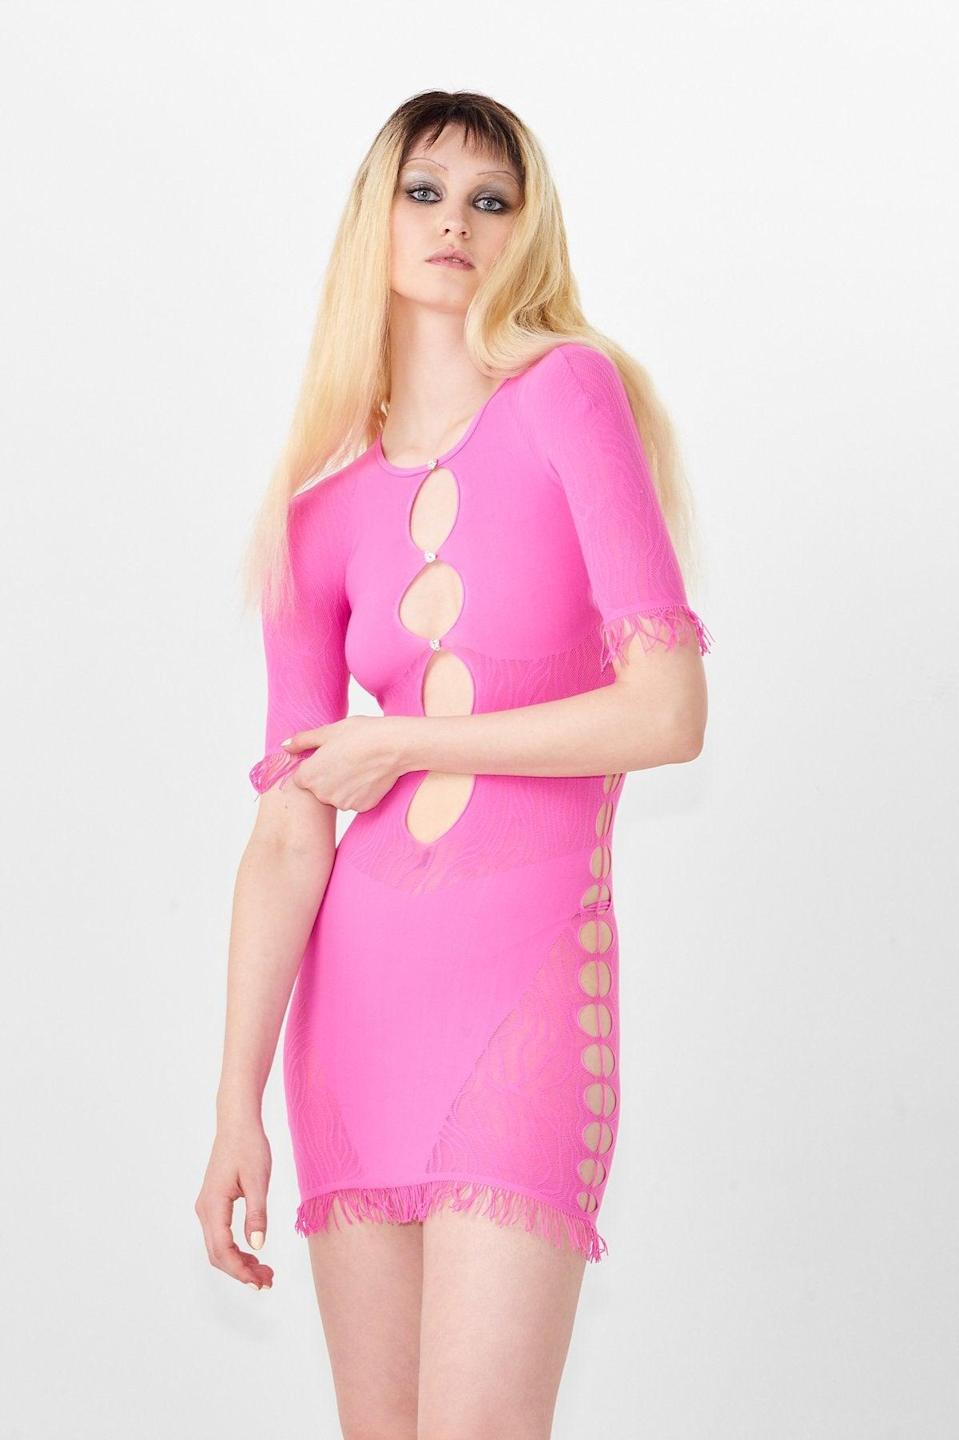 """<em>The prices on Poster Girl's website are in GBP, while our prices are listed in USD.</em><br><br><strong>Poster Girl</strong> Miranda Dress, $, available at <a href=""""https://go.skimresources.com/?id=30283X879131&url=https%3A%2F%2Fposter-girl.com%2Fcollections%2Fnew-in%2Fproducts%2Fmiranda-dress-2"""" rel=""""nofollow noopener"""" target=""""_blank"""" data-ylk=""""slk:Poster Girl"""" class=""""link rapid-noclick-resp"""">Poster Girl</a>"""